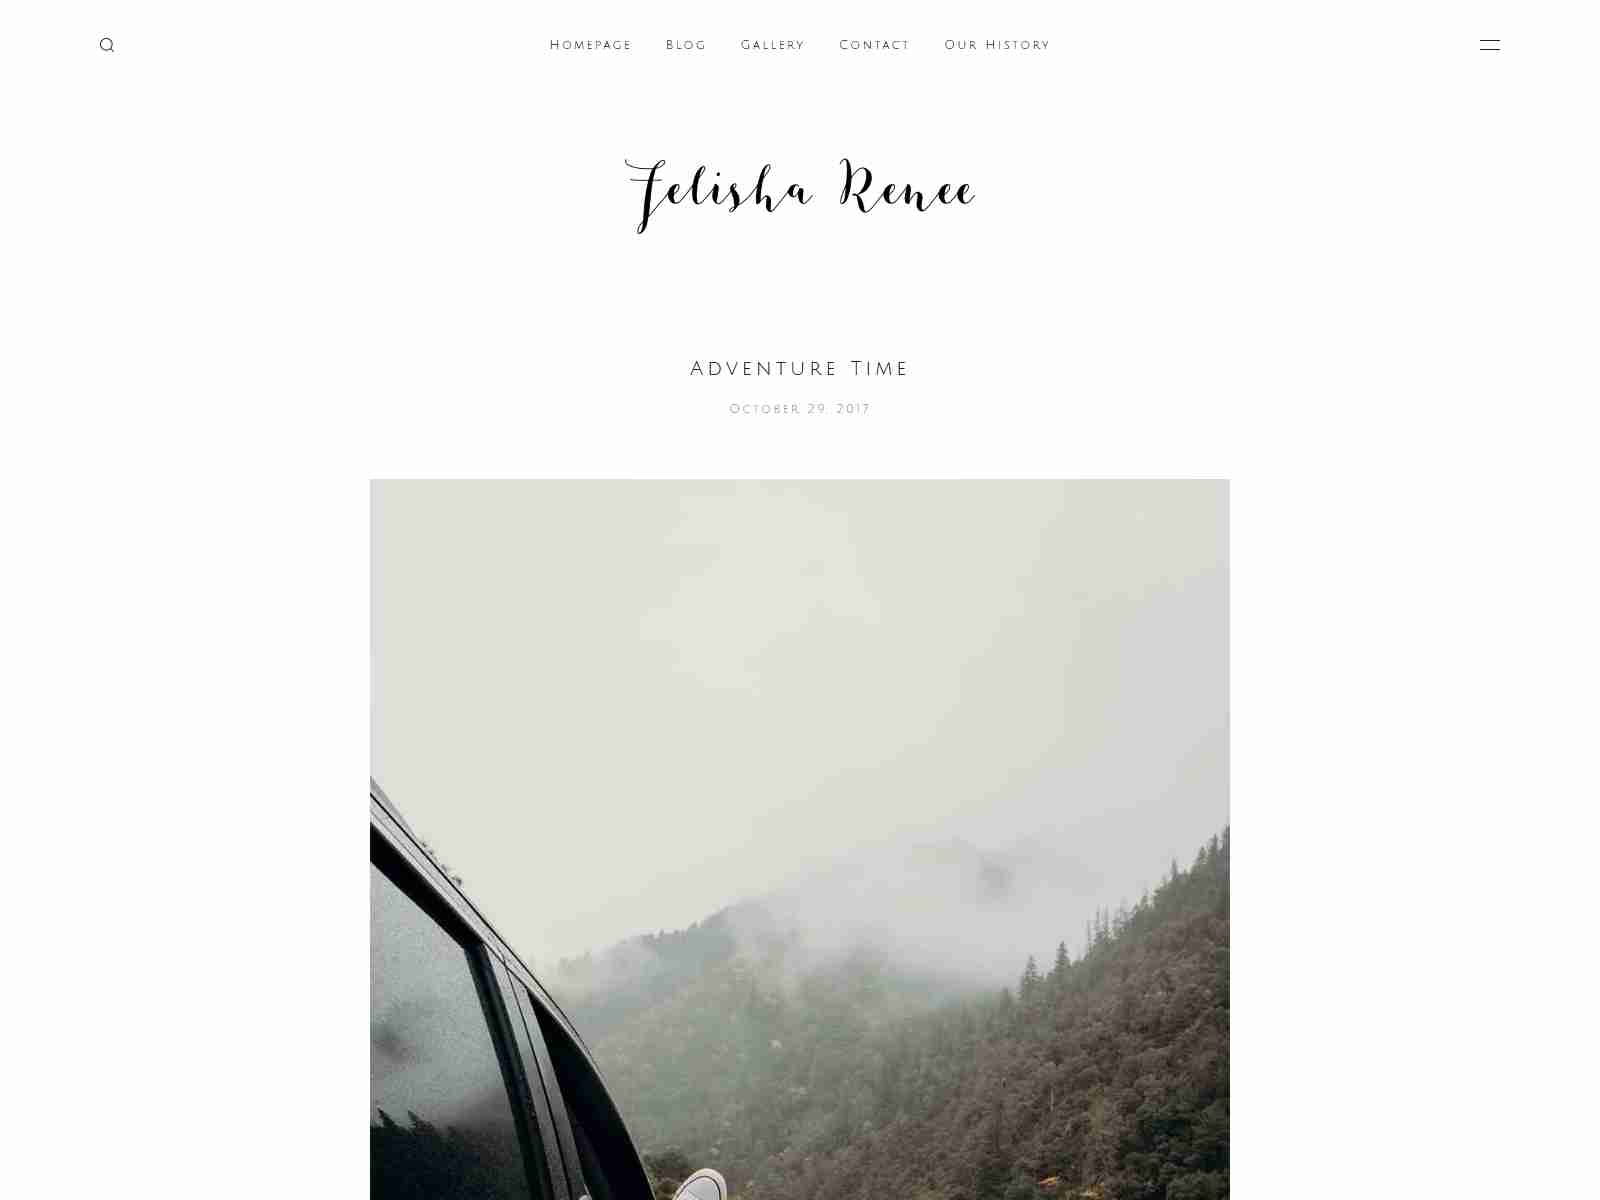 Renee: Portfolio Theme With Sideblog Enabled